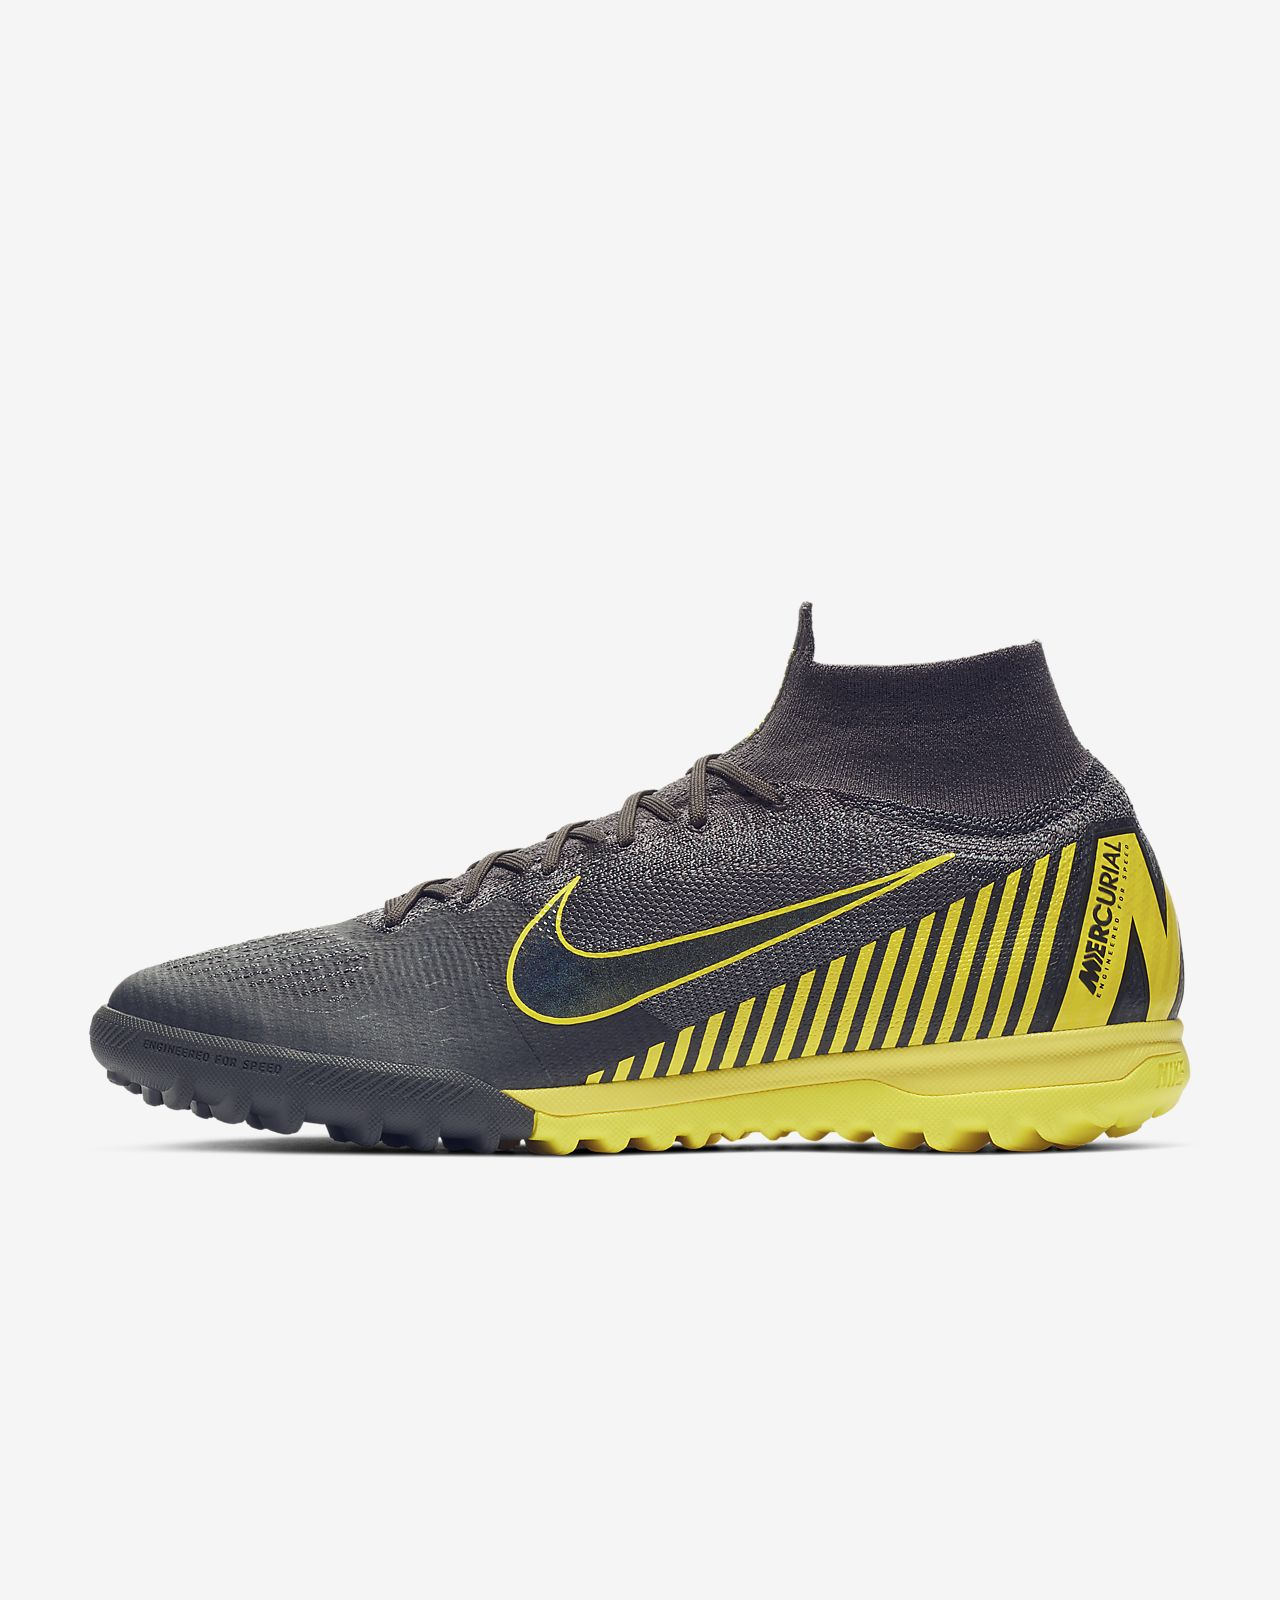 Calzado de fútbol para pasto artificial Nike SuperflyX 6 Elite TF Game Over